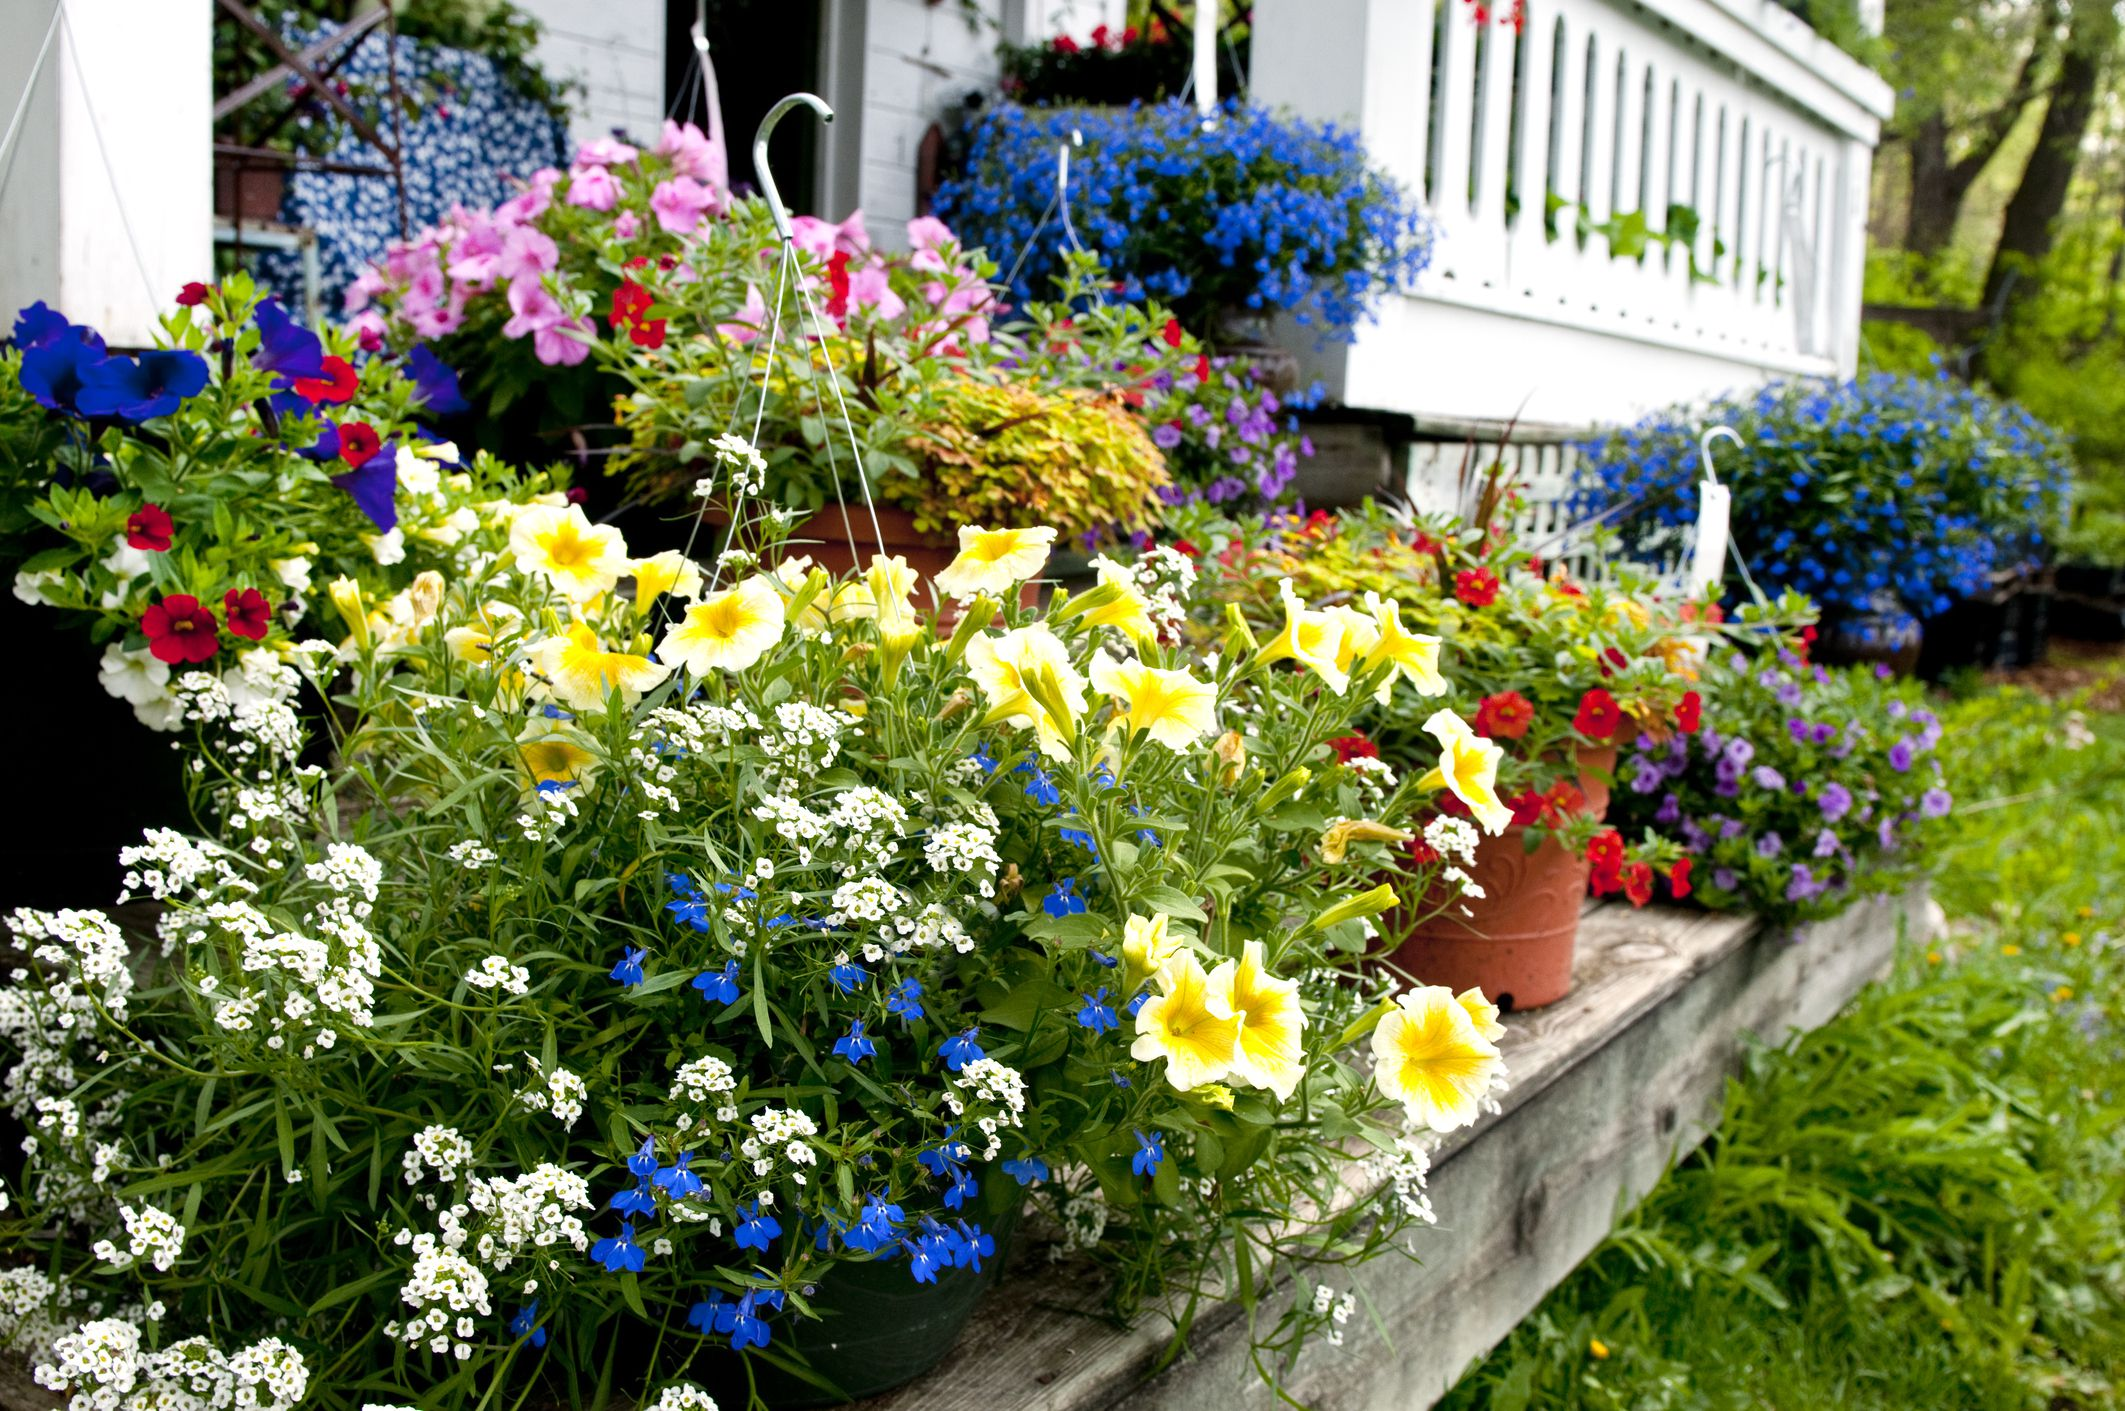 How To Use Bedding Plants In Your Lawn Or Garden